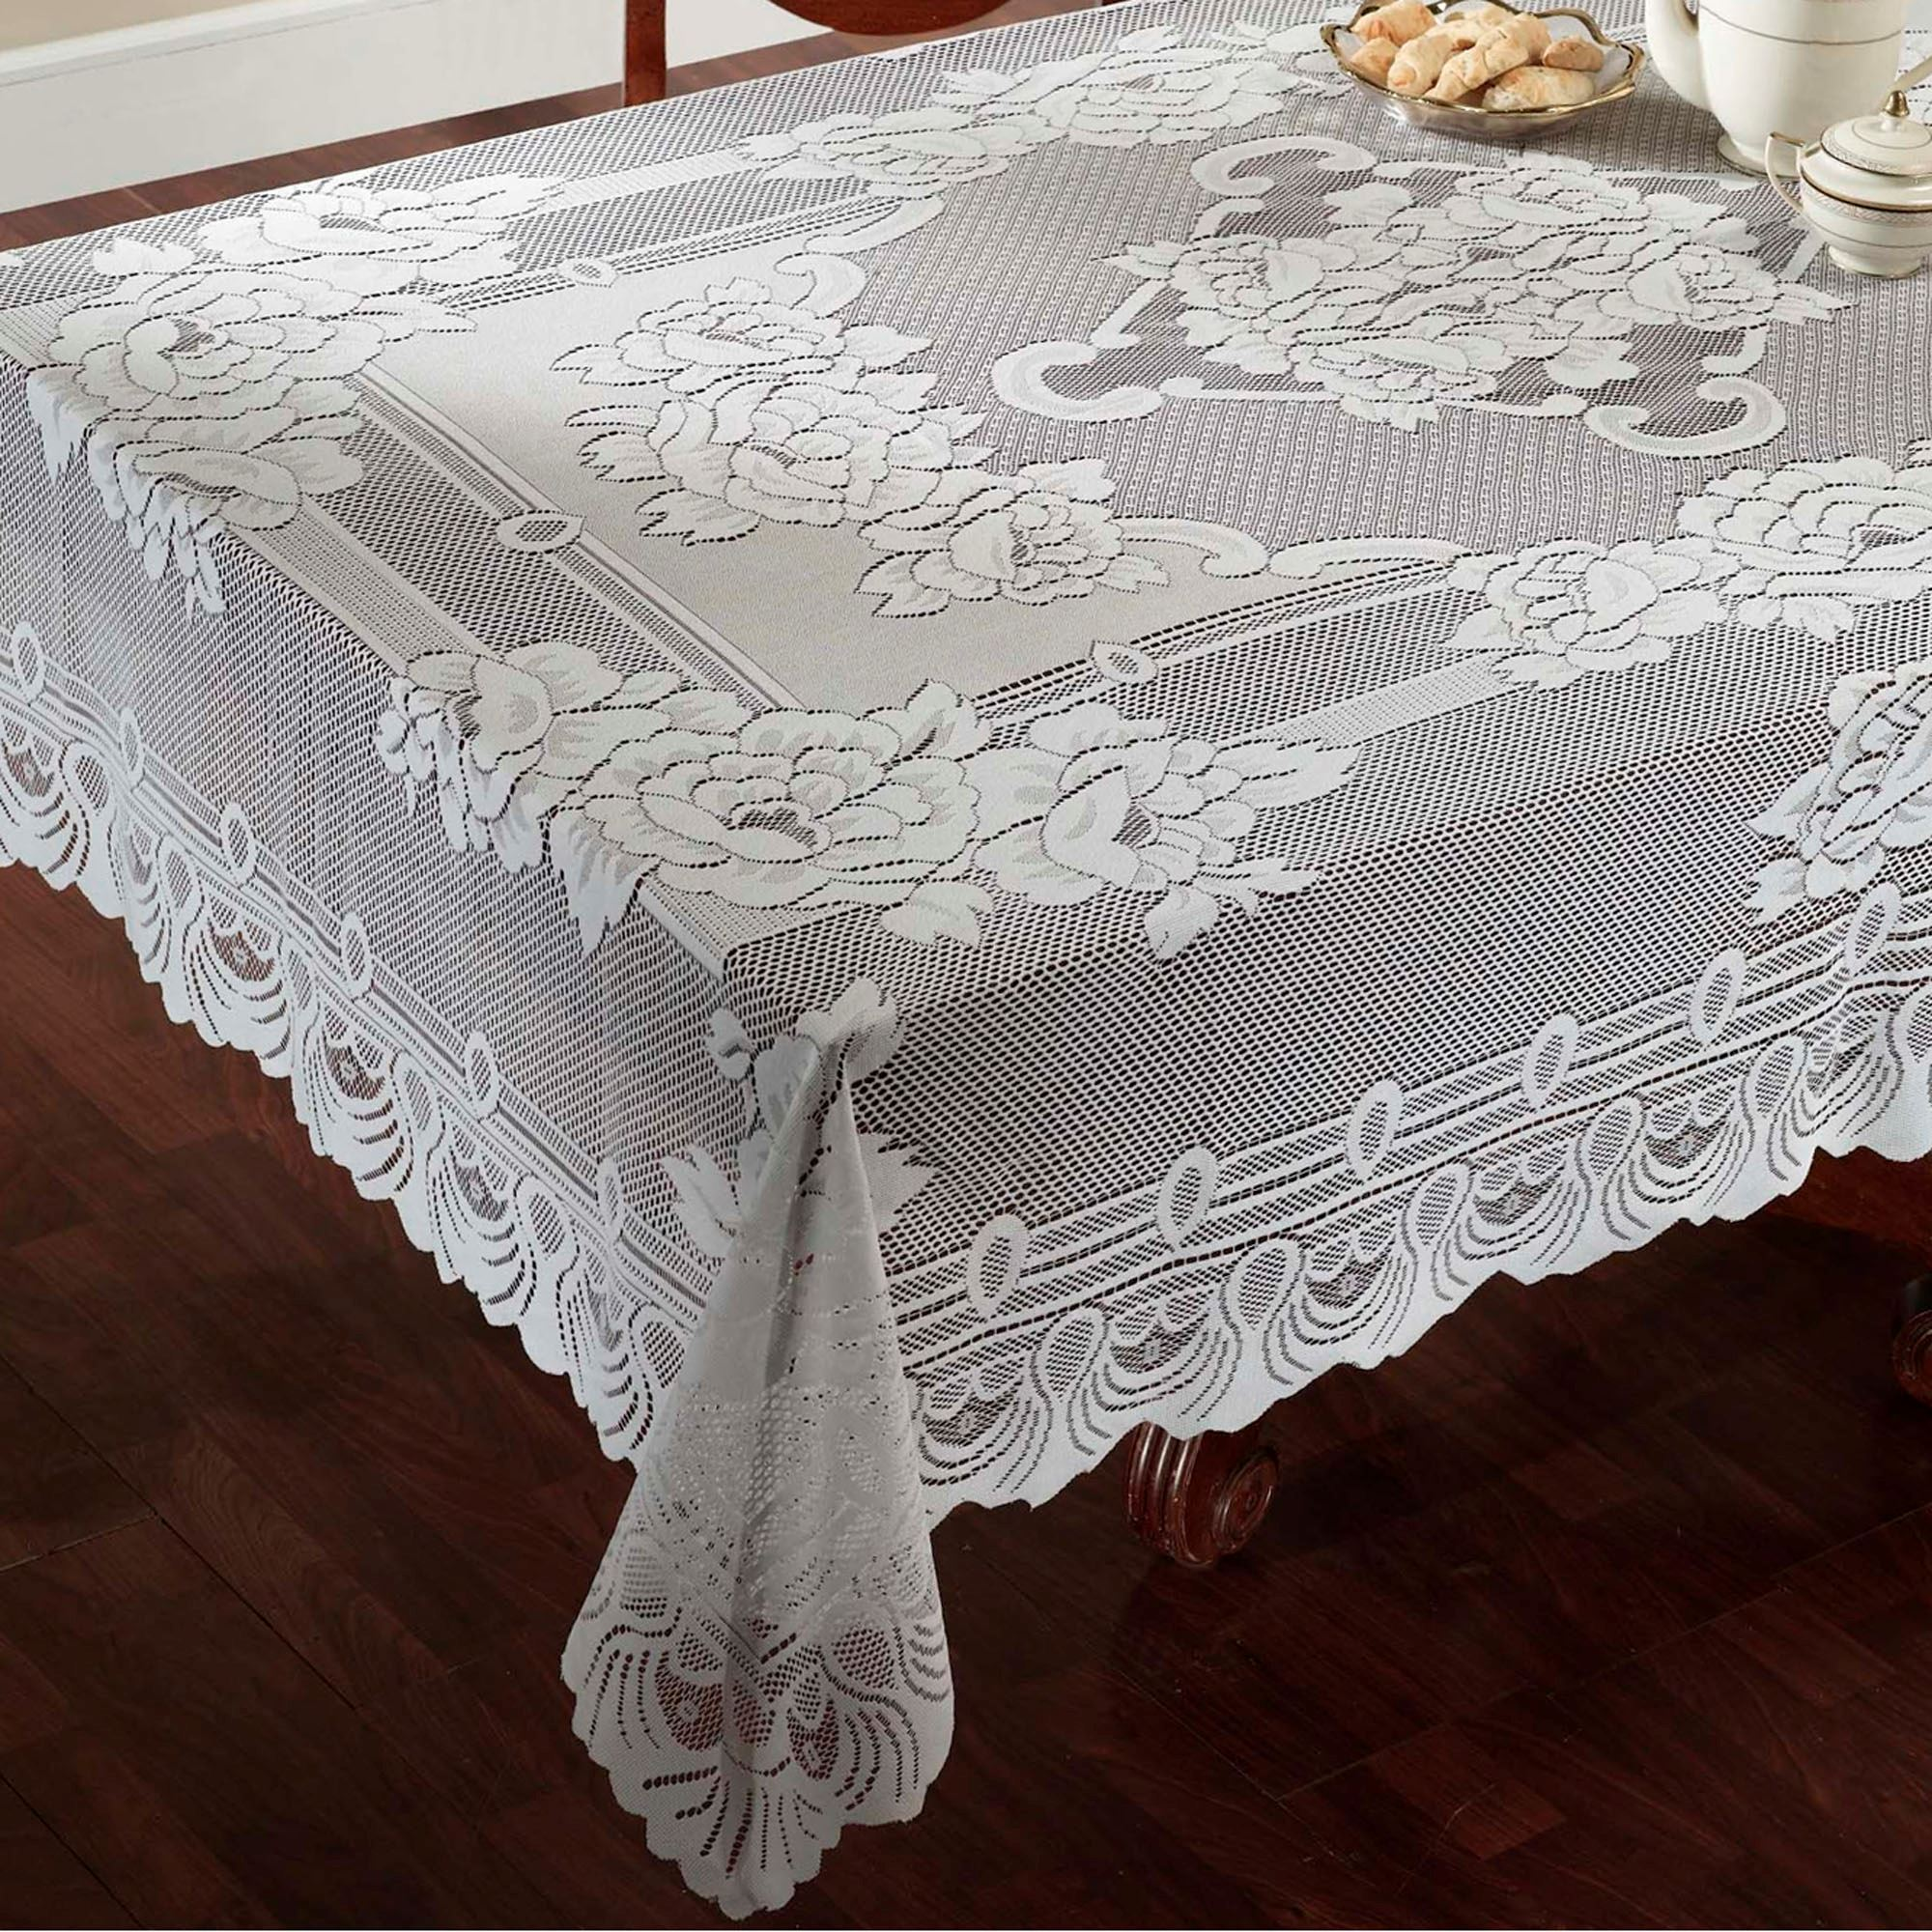 Antique Lace Tablecloth | Lace Tablecloths | Irish Lace Tablecloth